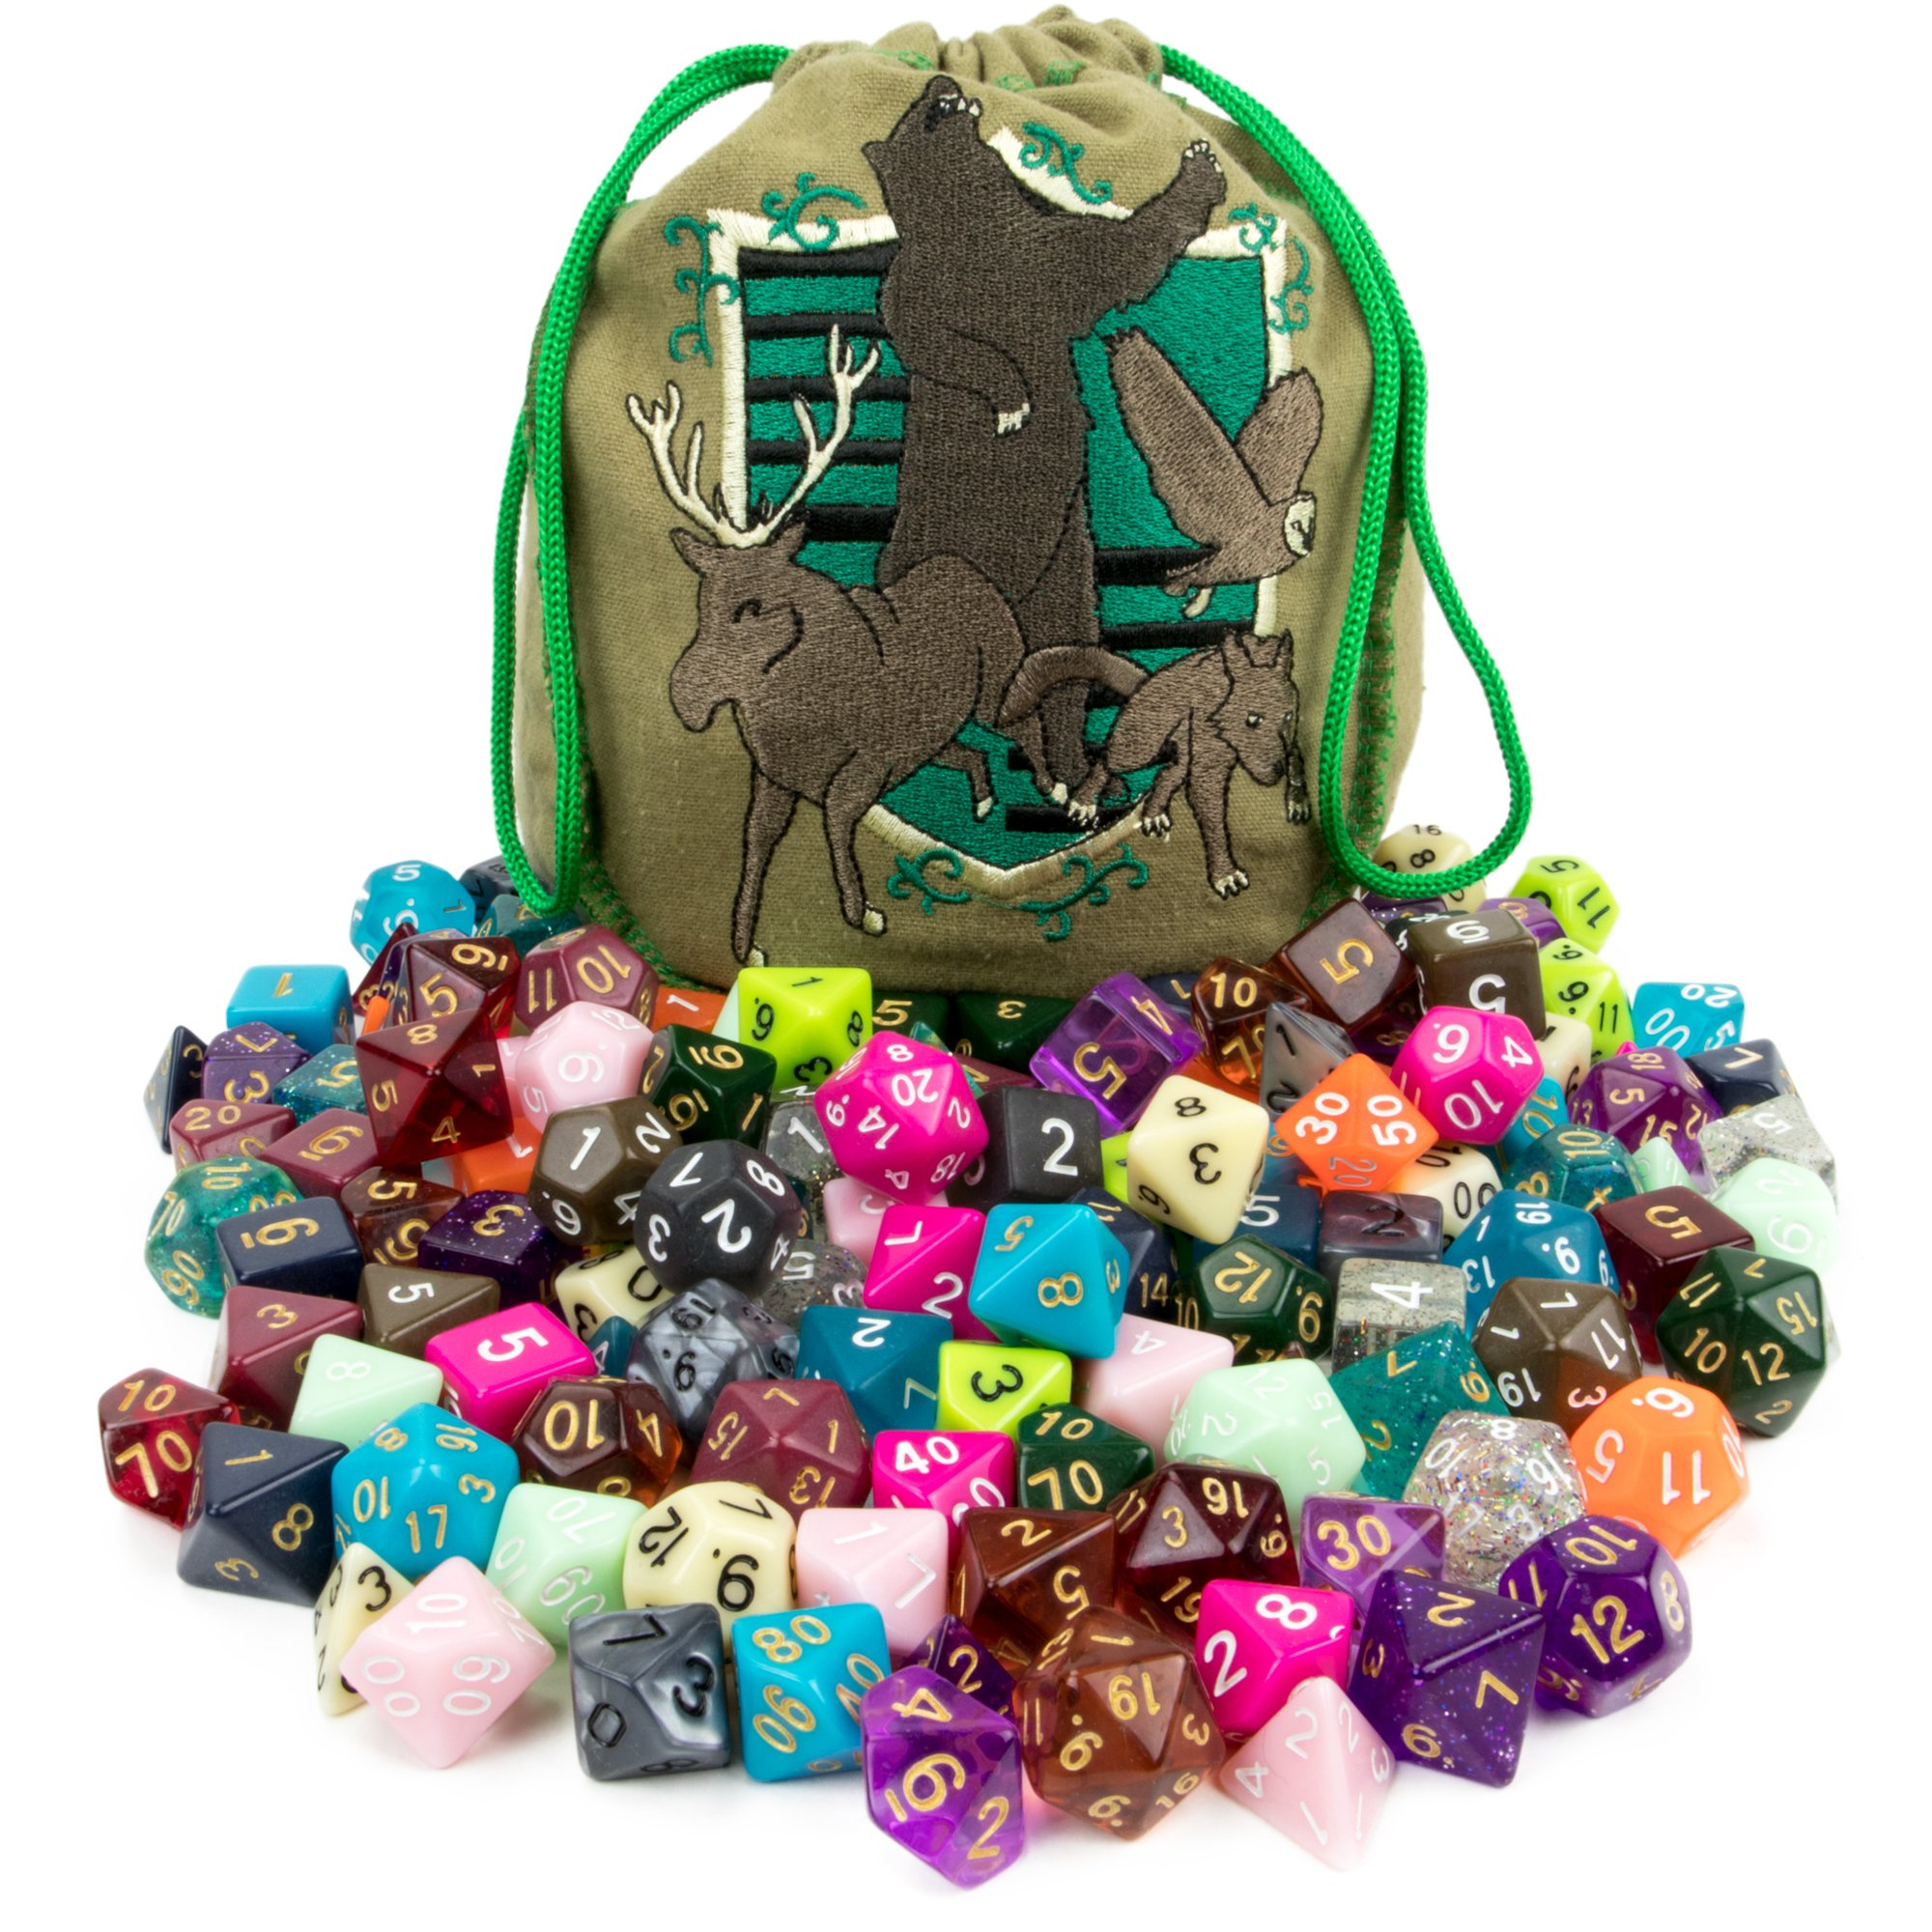 Wiz Dice Bag of Tricks: Collection of 140 Polyhedral Dice in 20 Guaranteed Complete Sets for Tabletop Role-Playing Games - Neons, Translucents, & Sparkly Glitters by Wiz Dice